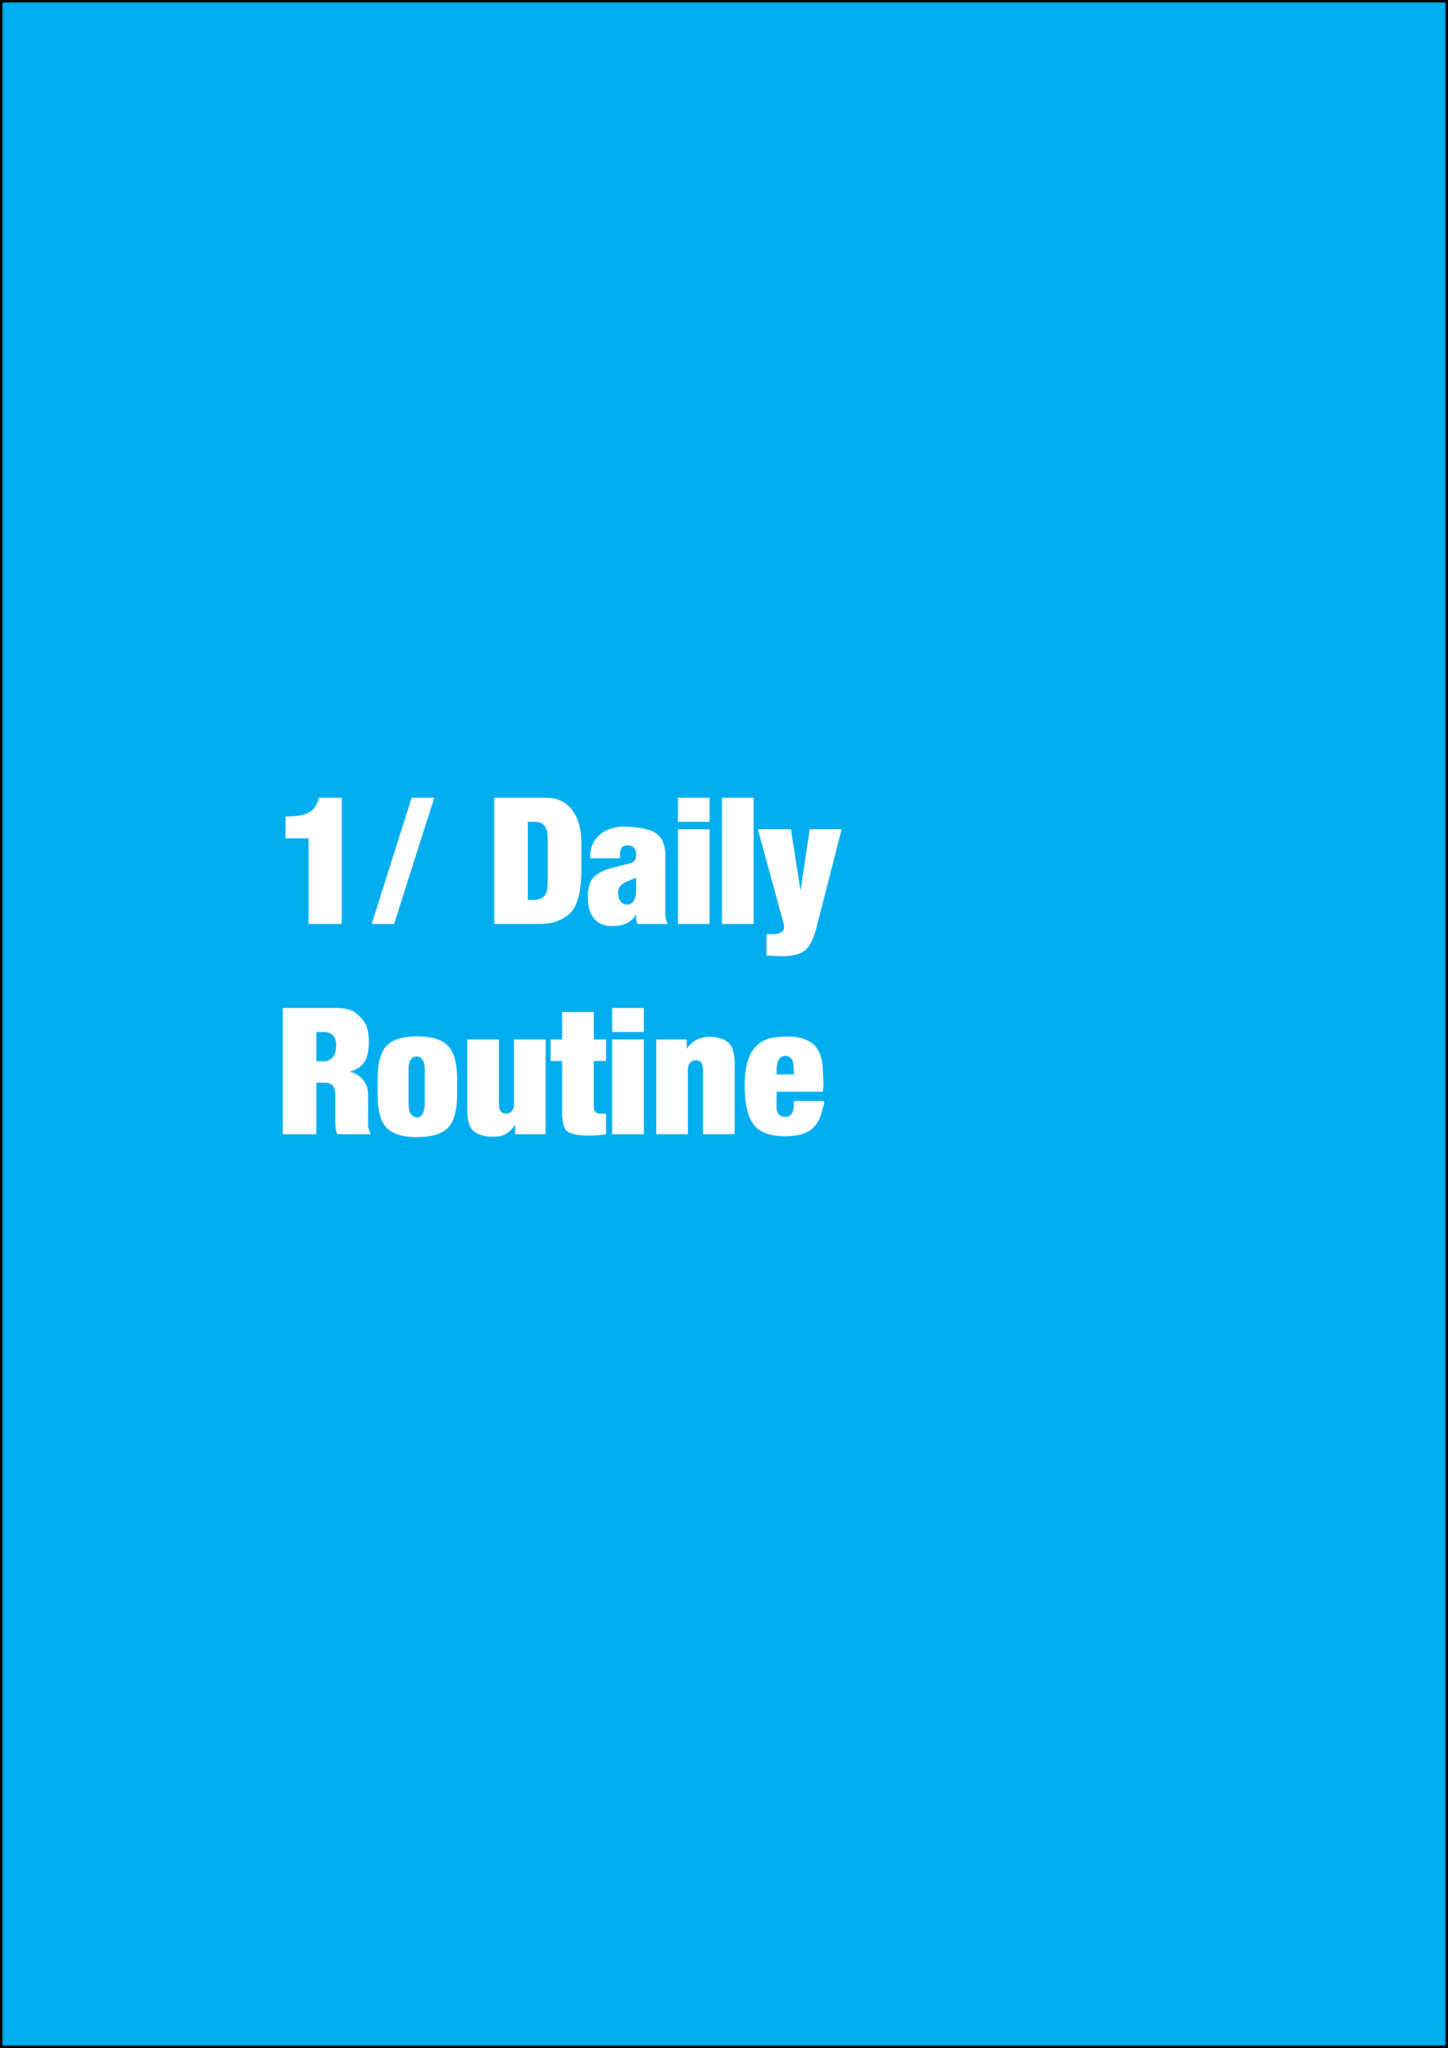 french daily routine 100 words List of 100 most commonly used hindi words # word transliteration (iast) english equivalent 1.